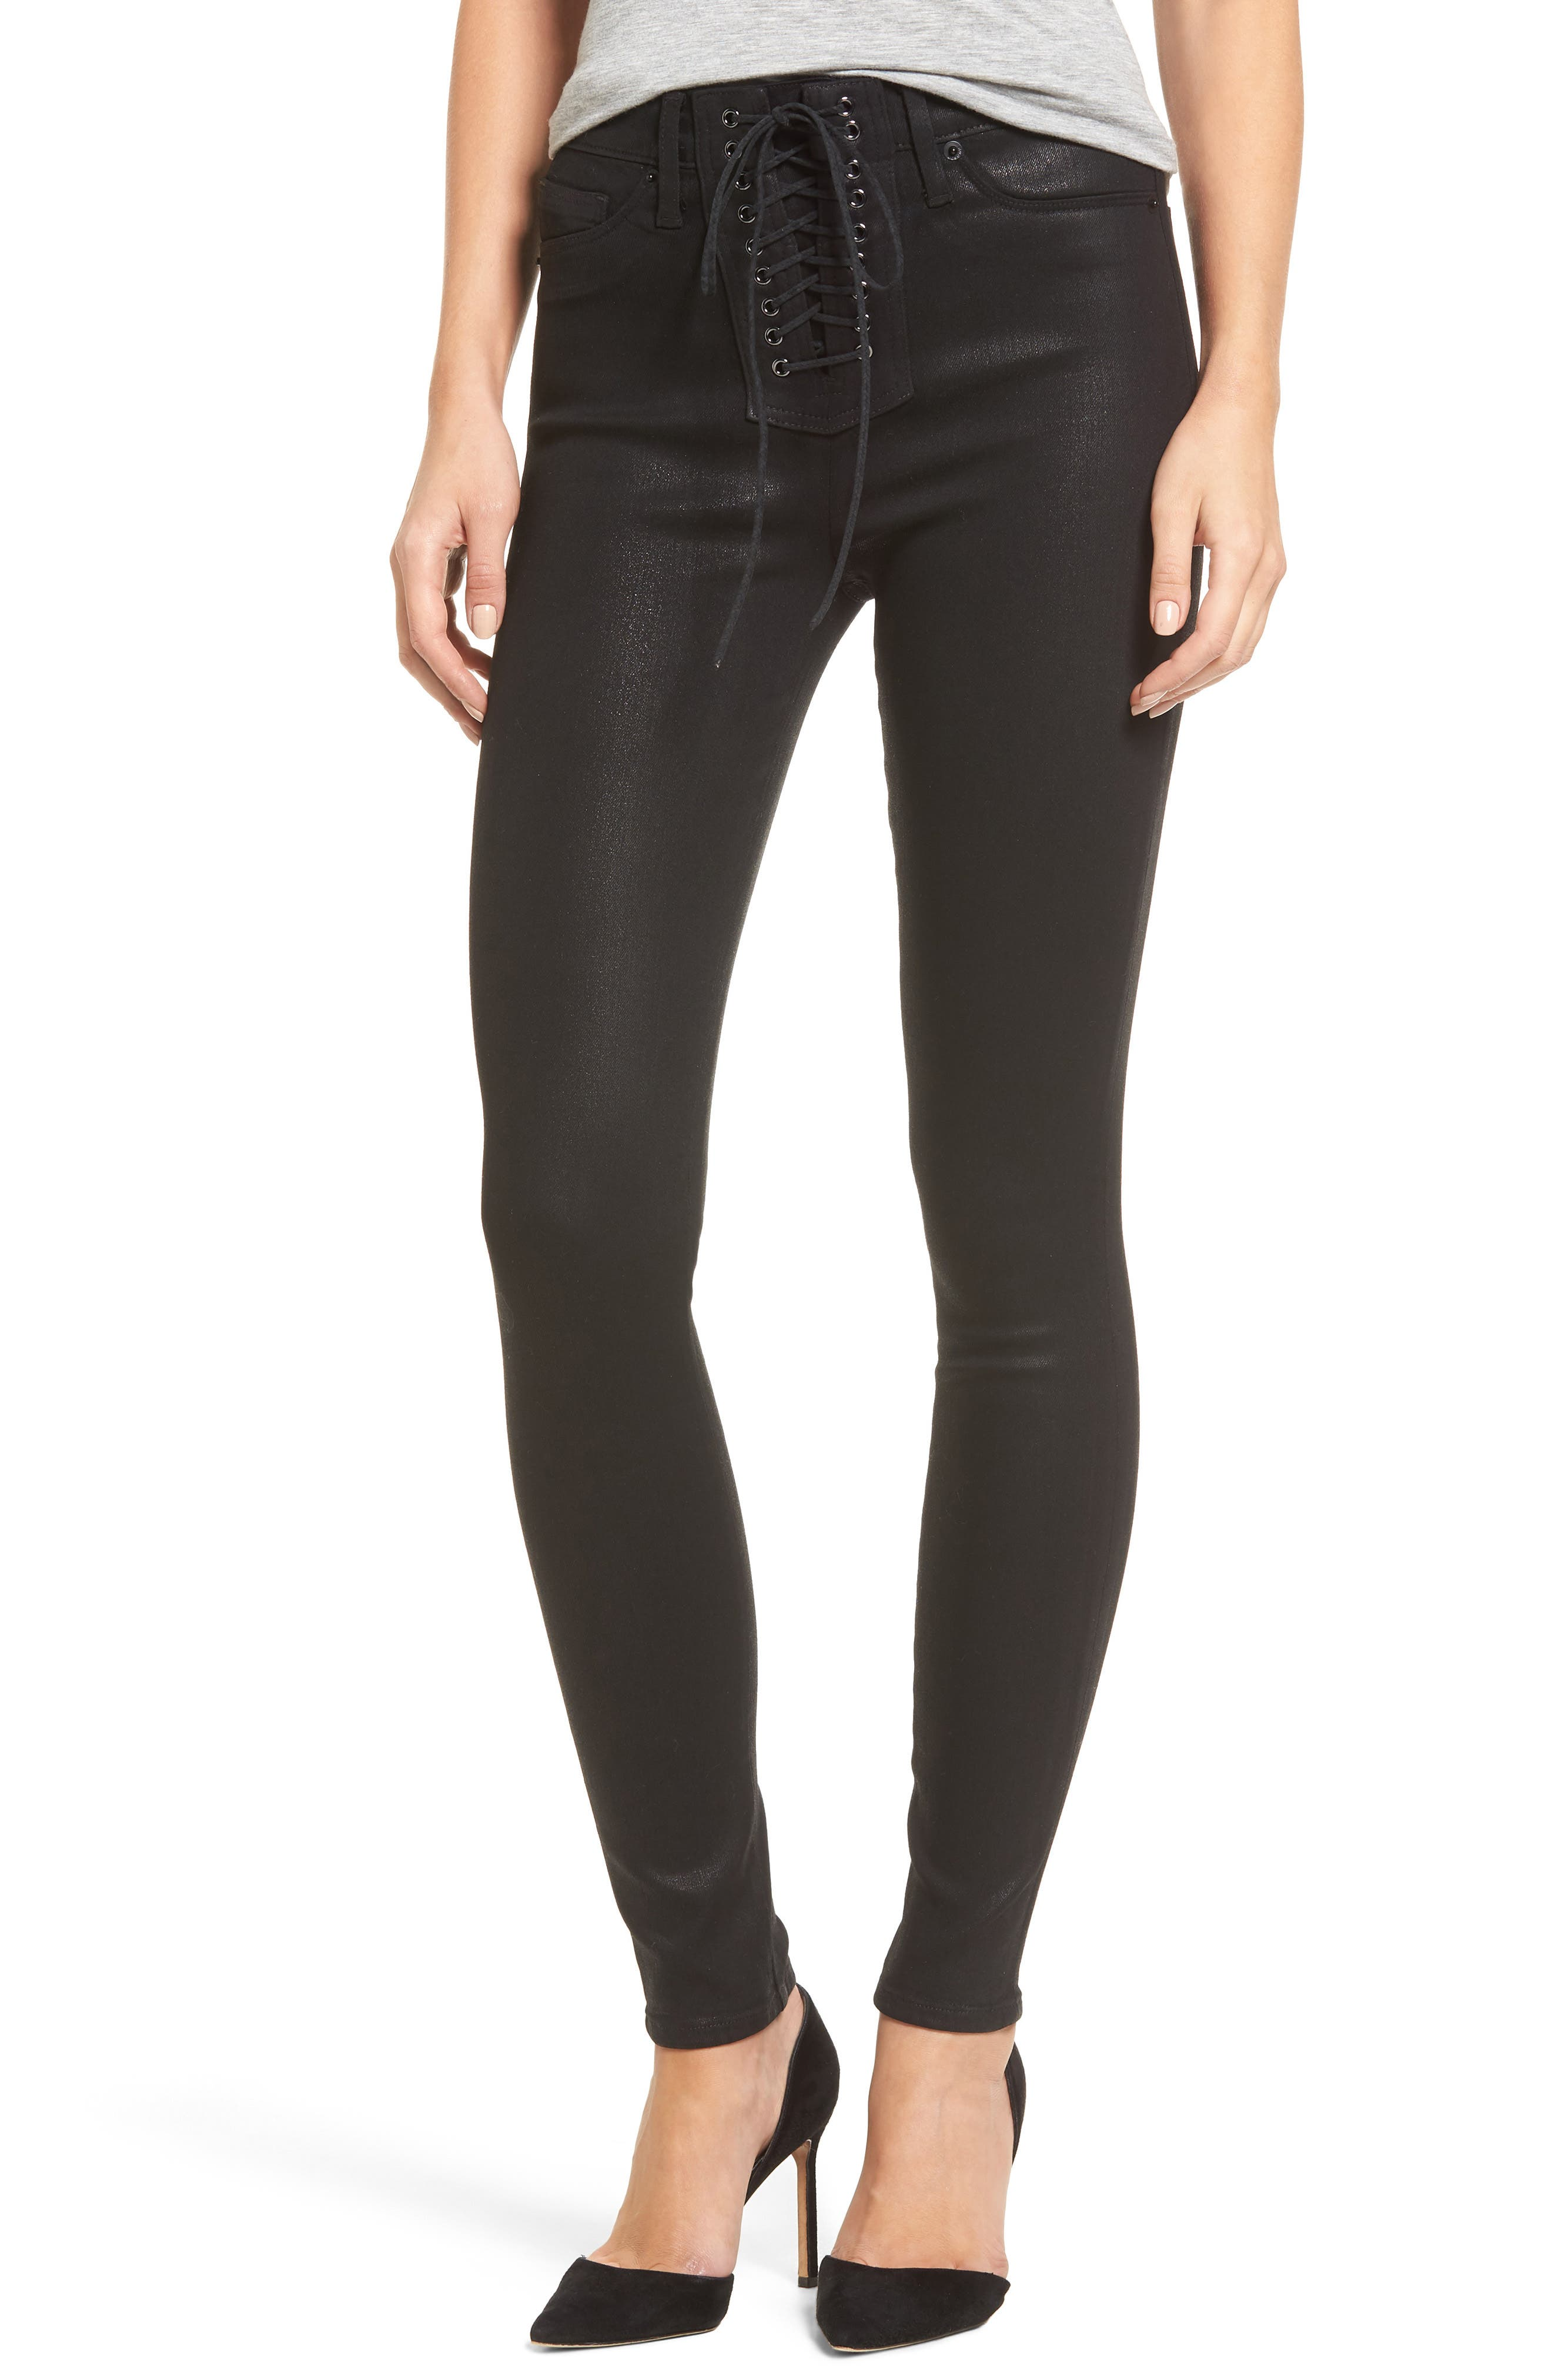 Main Image - Hudson Jeans Bullocks High Waist Lace-Up Skinny Jeans (Black Coated)